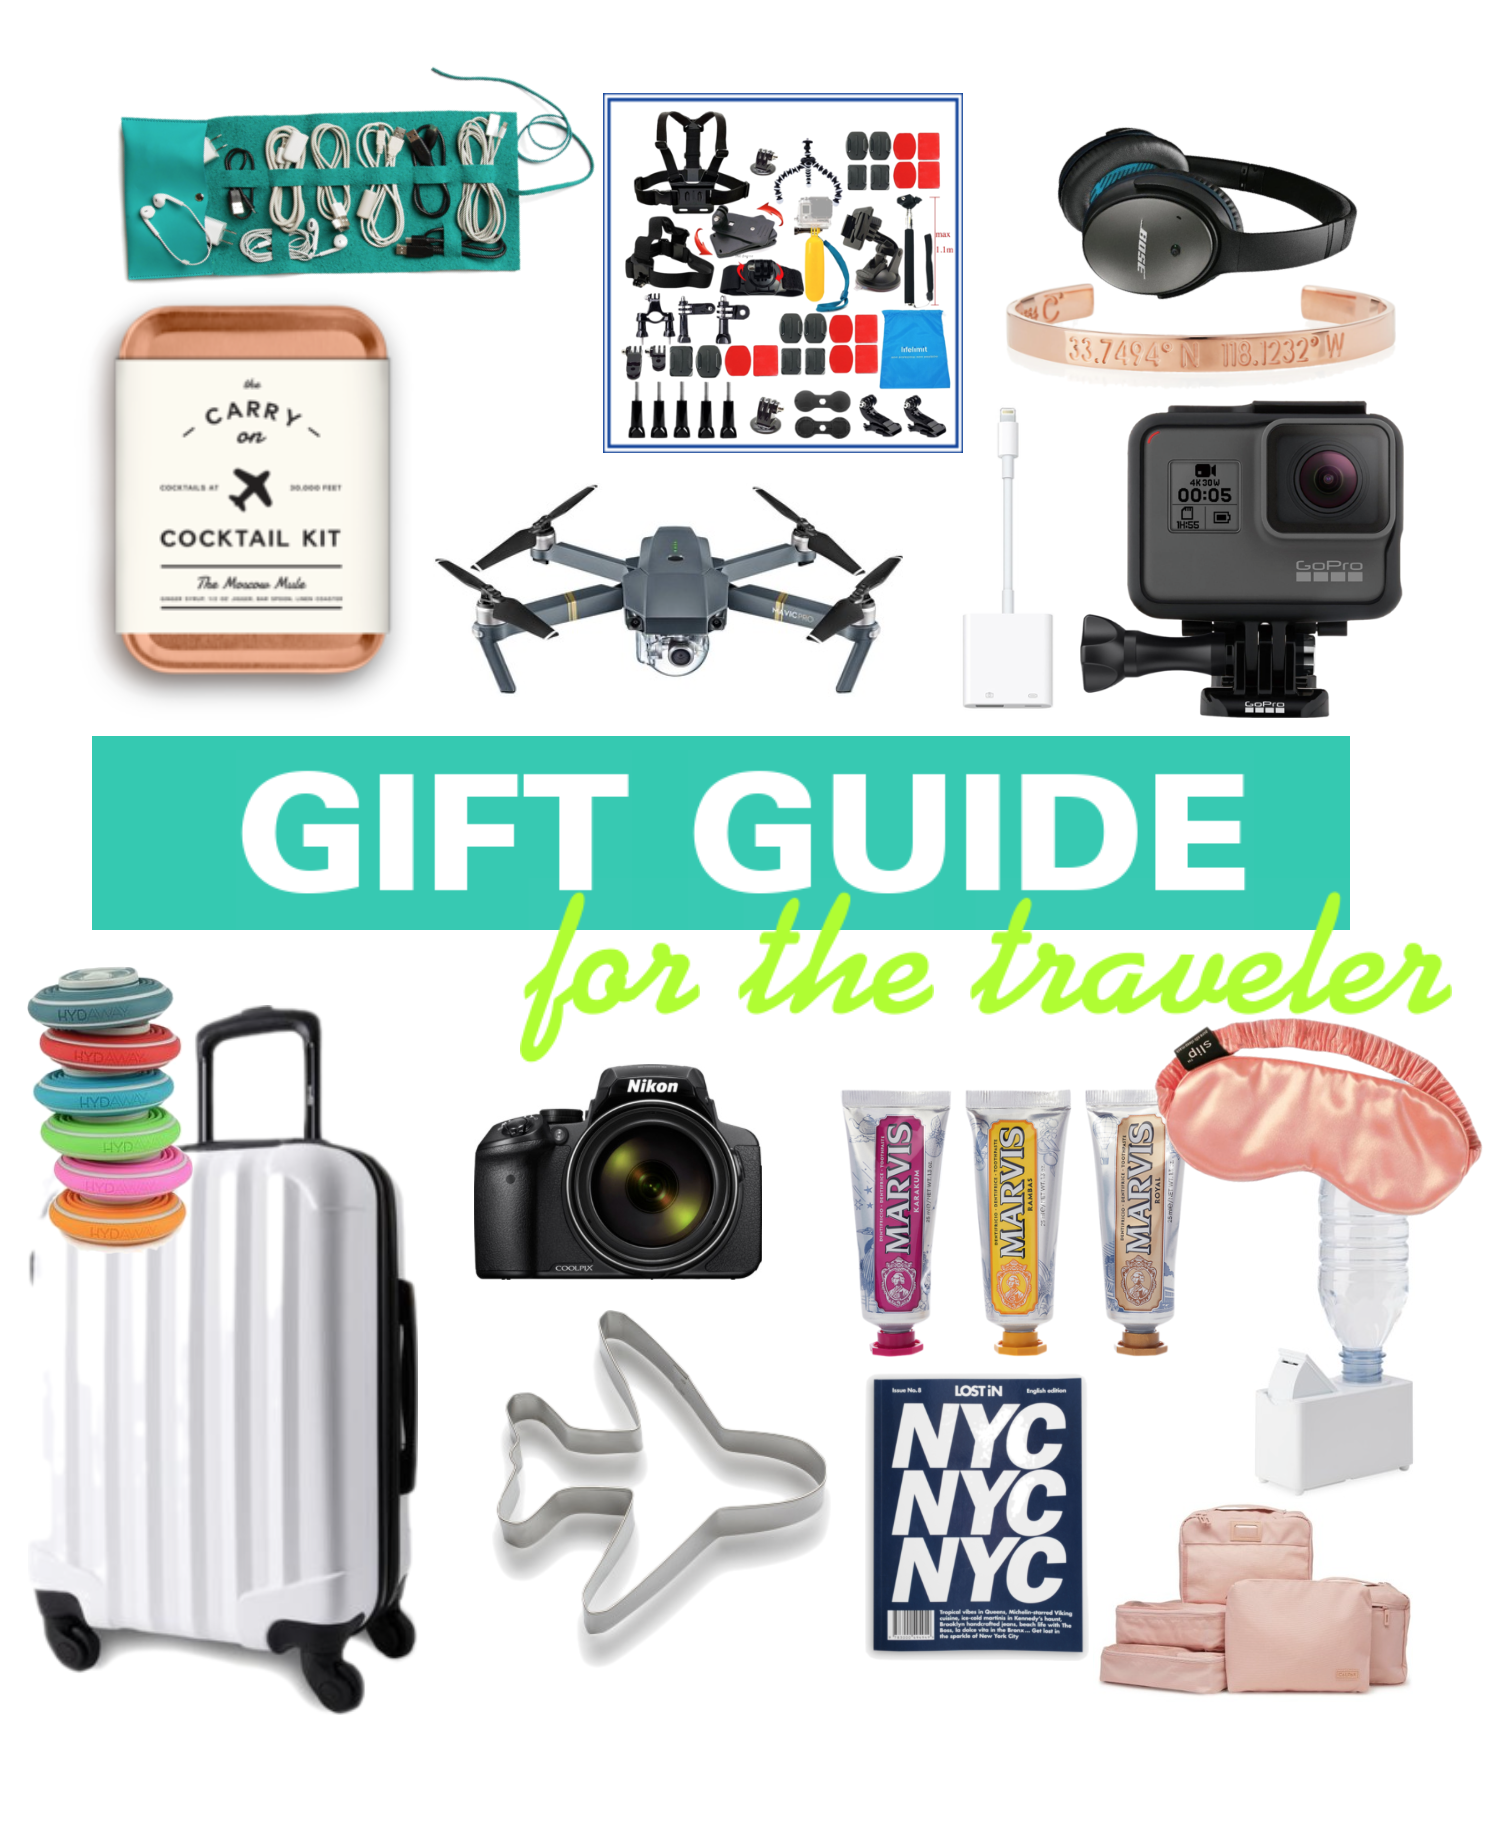 Gift Guide For The Traveler - 2017 Christmas Stocking Stuffers - Stocking Stuffer Ideas - Holiday Gift Ideas For Travelers - Gifts For Travel Lovers - Travel Ideas - Travel Packing List - Communikait by Kait Hanson